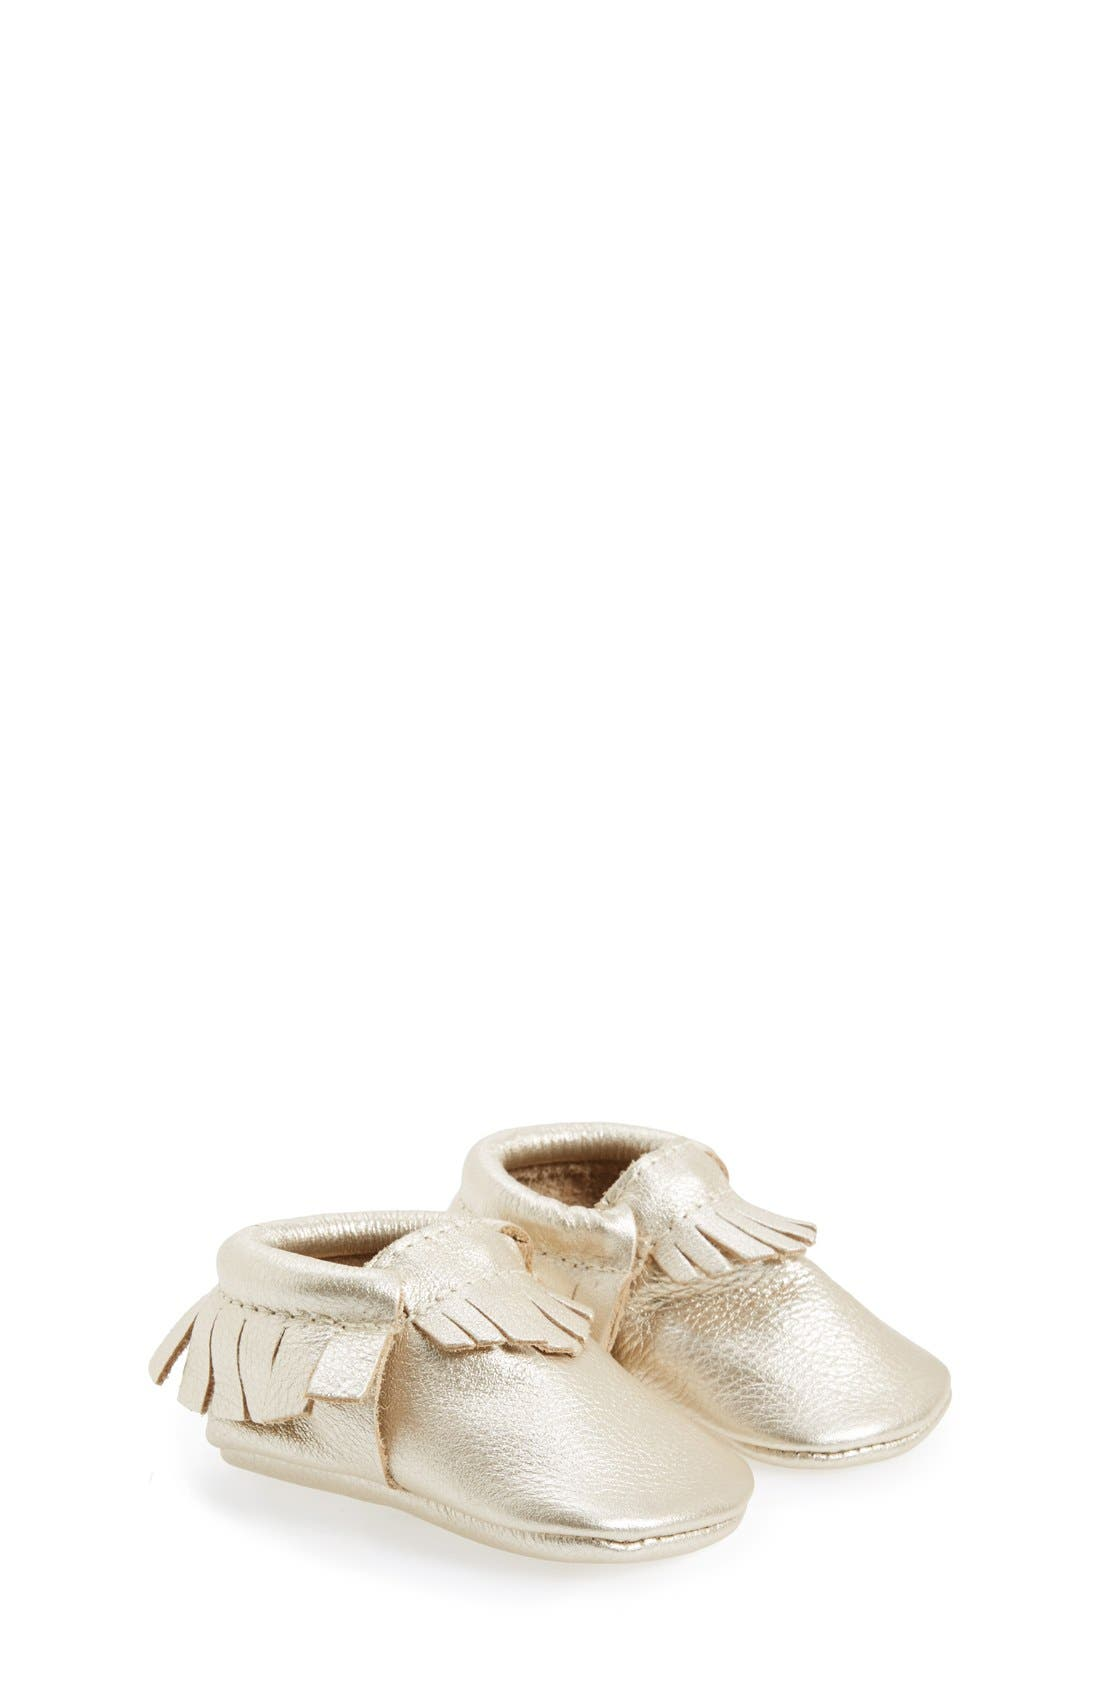 Alternate Image 1 Selected - Freshly Picked Metallic Leather Moccasin (Baby & Walker)